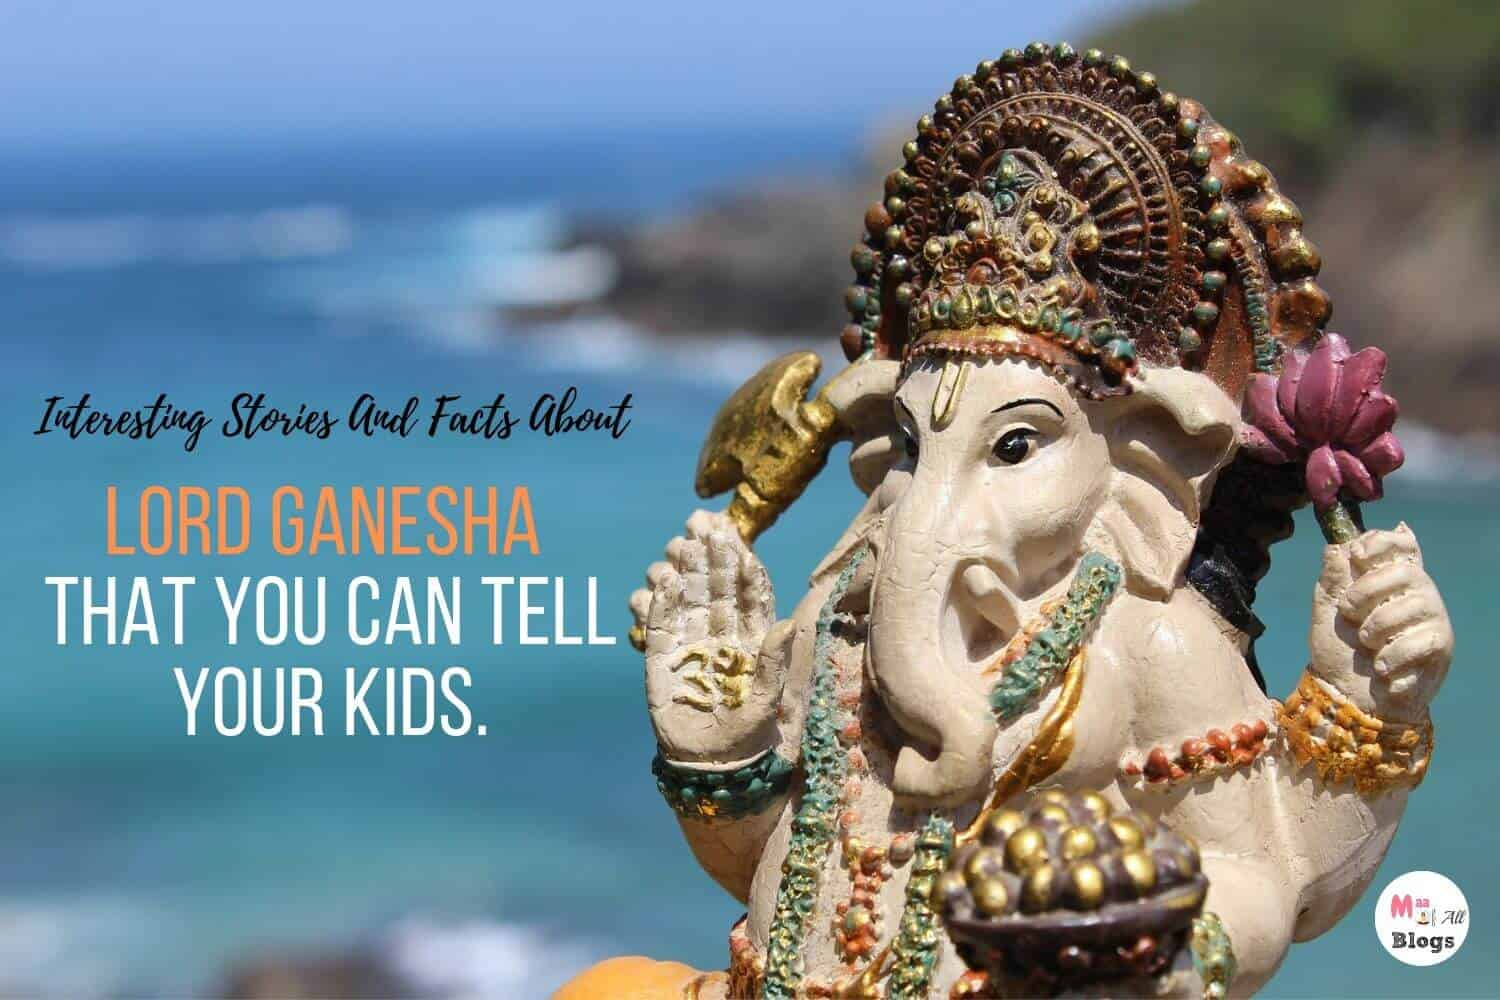 Interesting Stories And Fact about Lord Ganesha